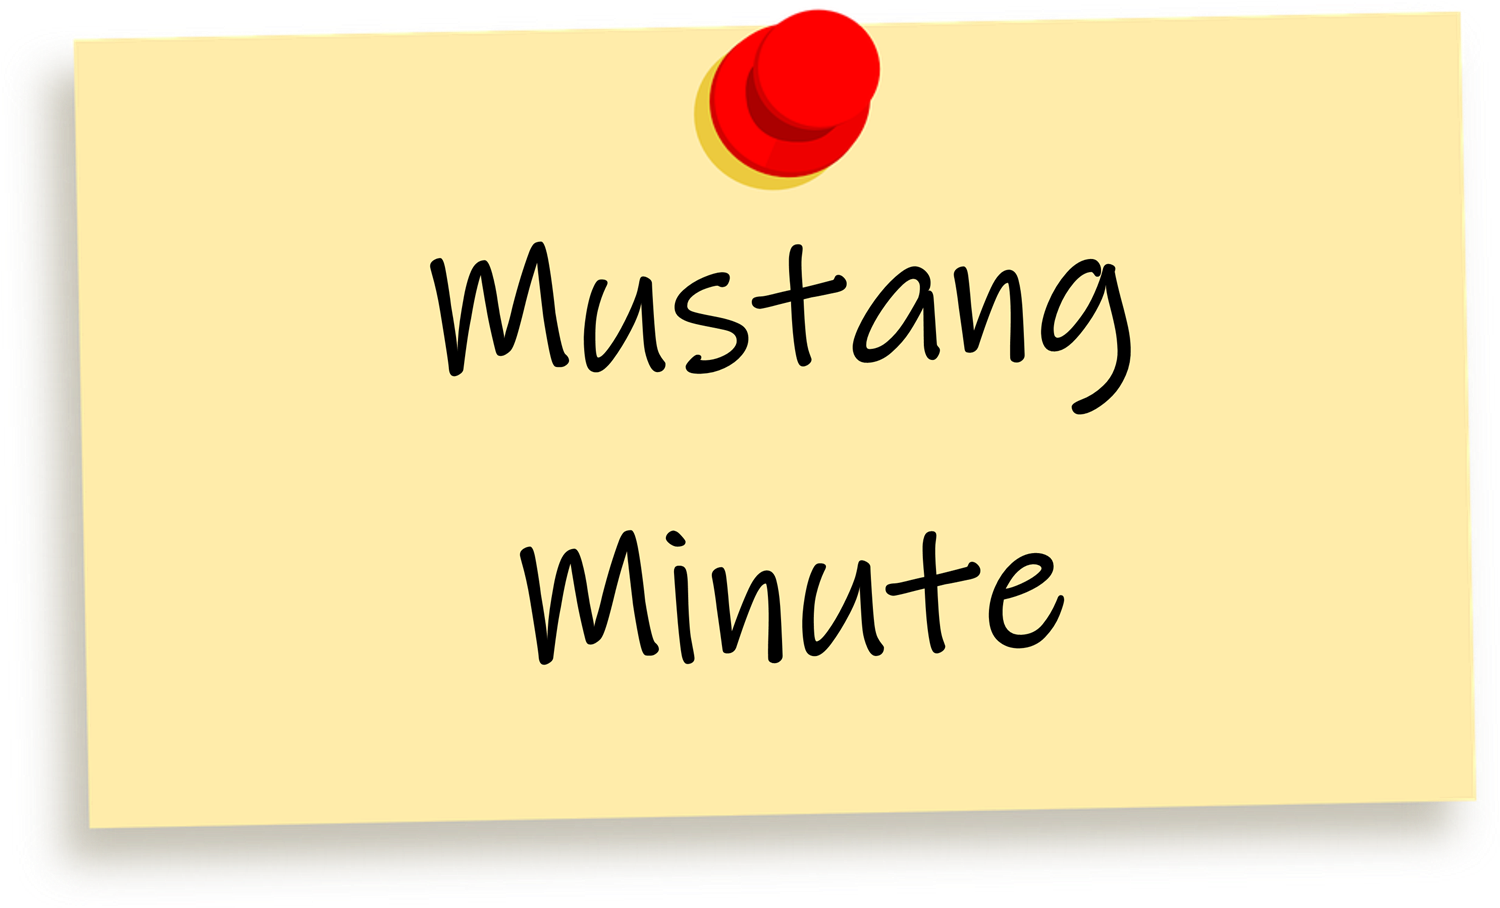 The Mustang Minute